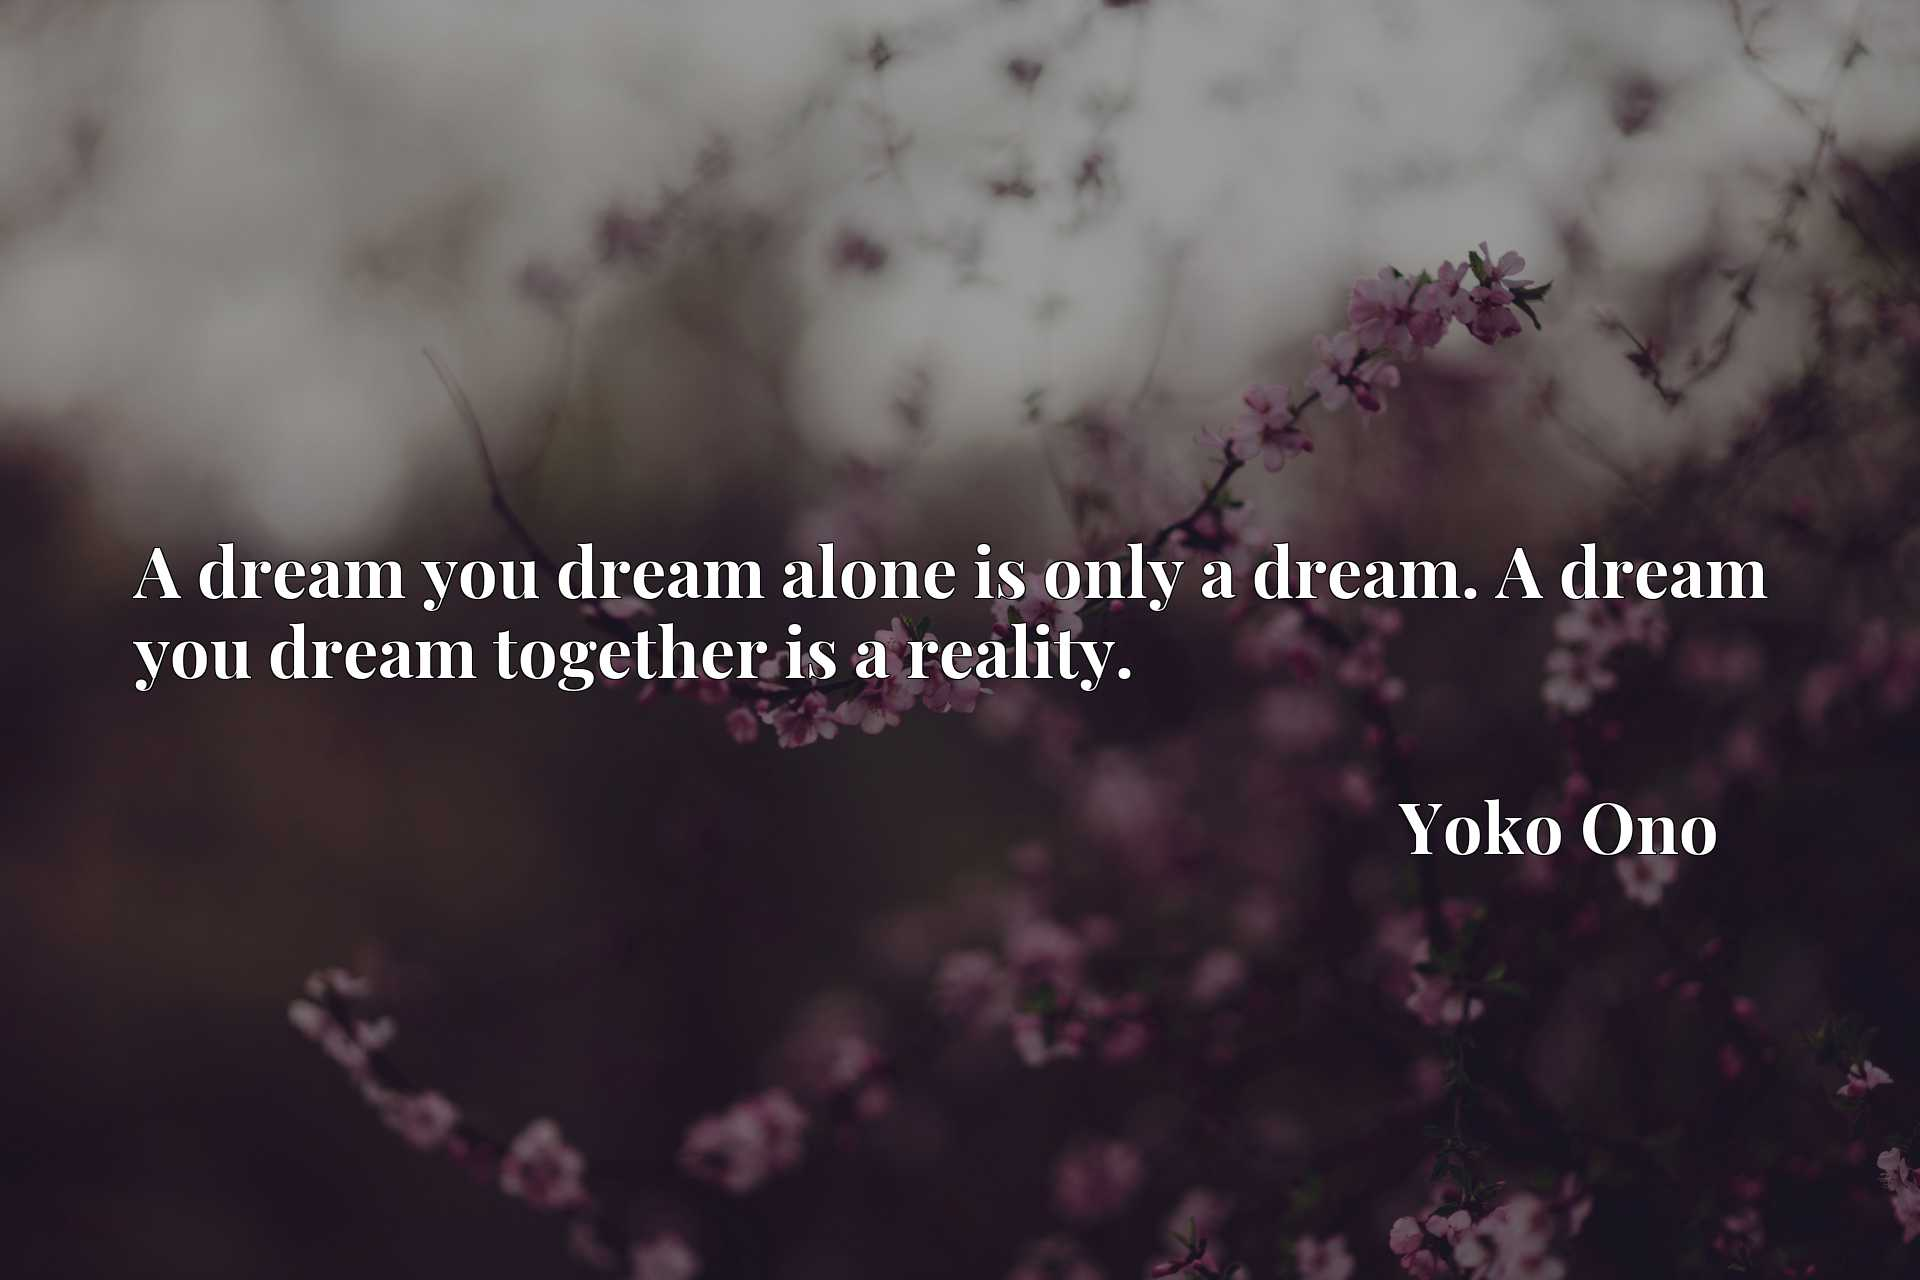 A dream you dream alone is only a dream. A dream you dream together is a reality.